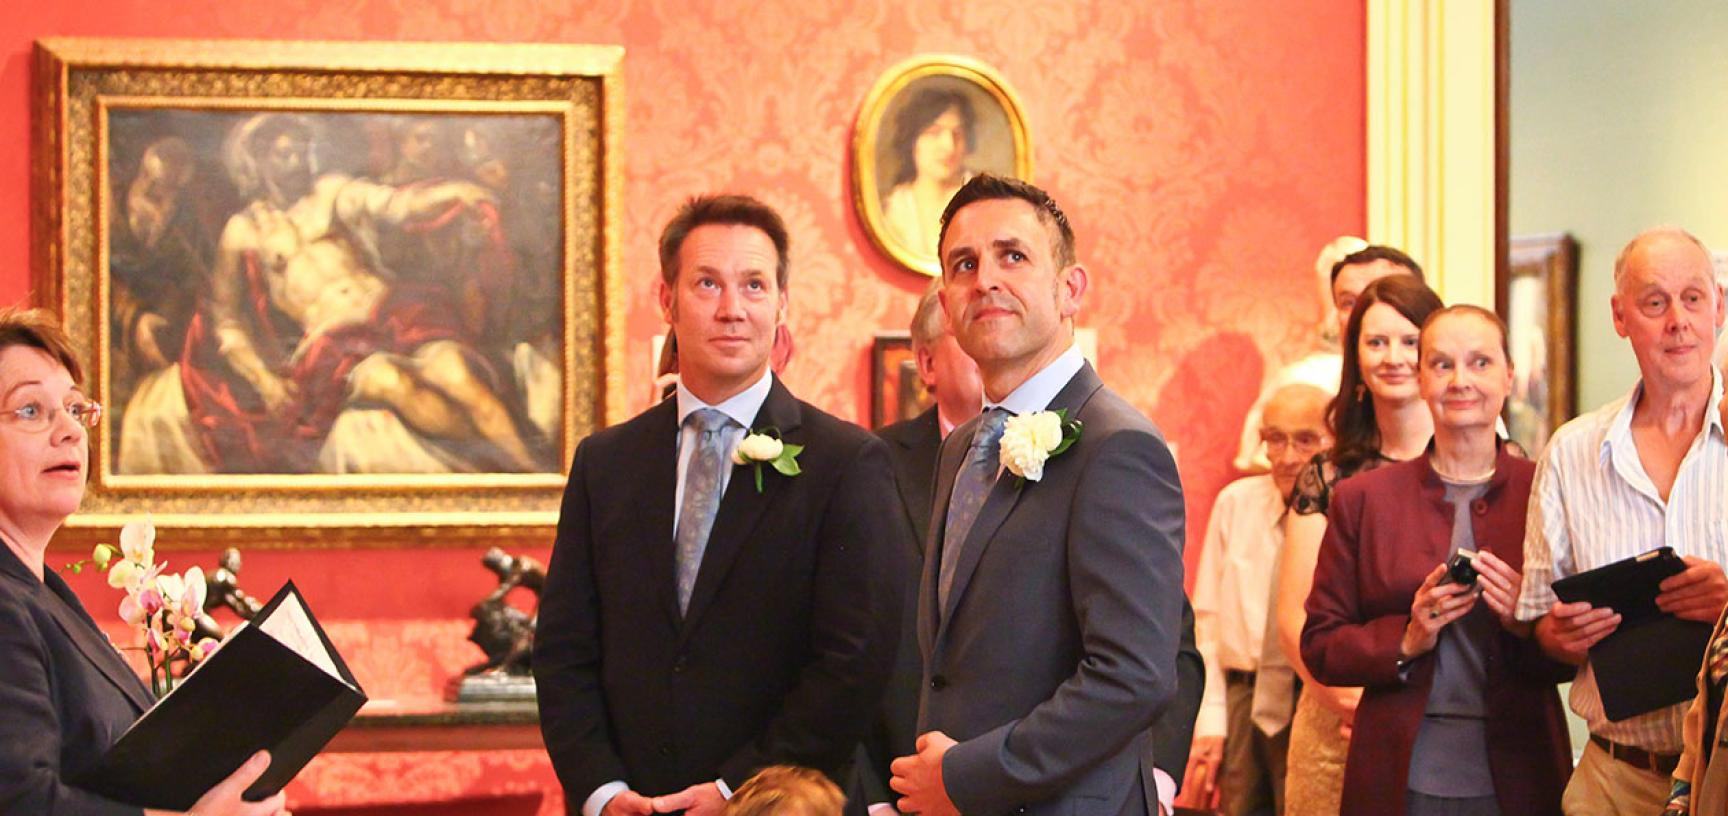 A Wedding in the Mallett Gallery of the Ashmolean Museum – Venue Hire